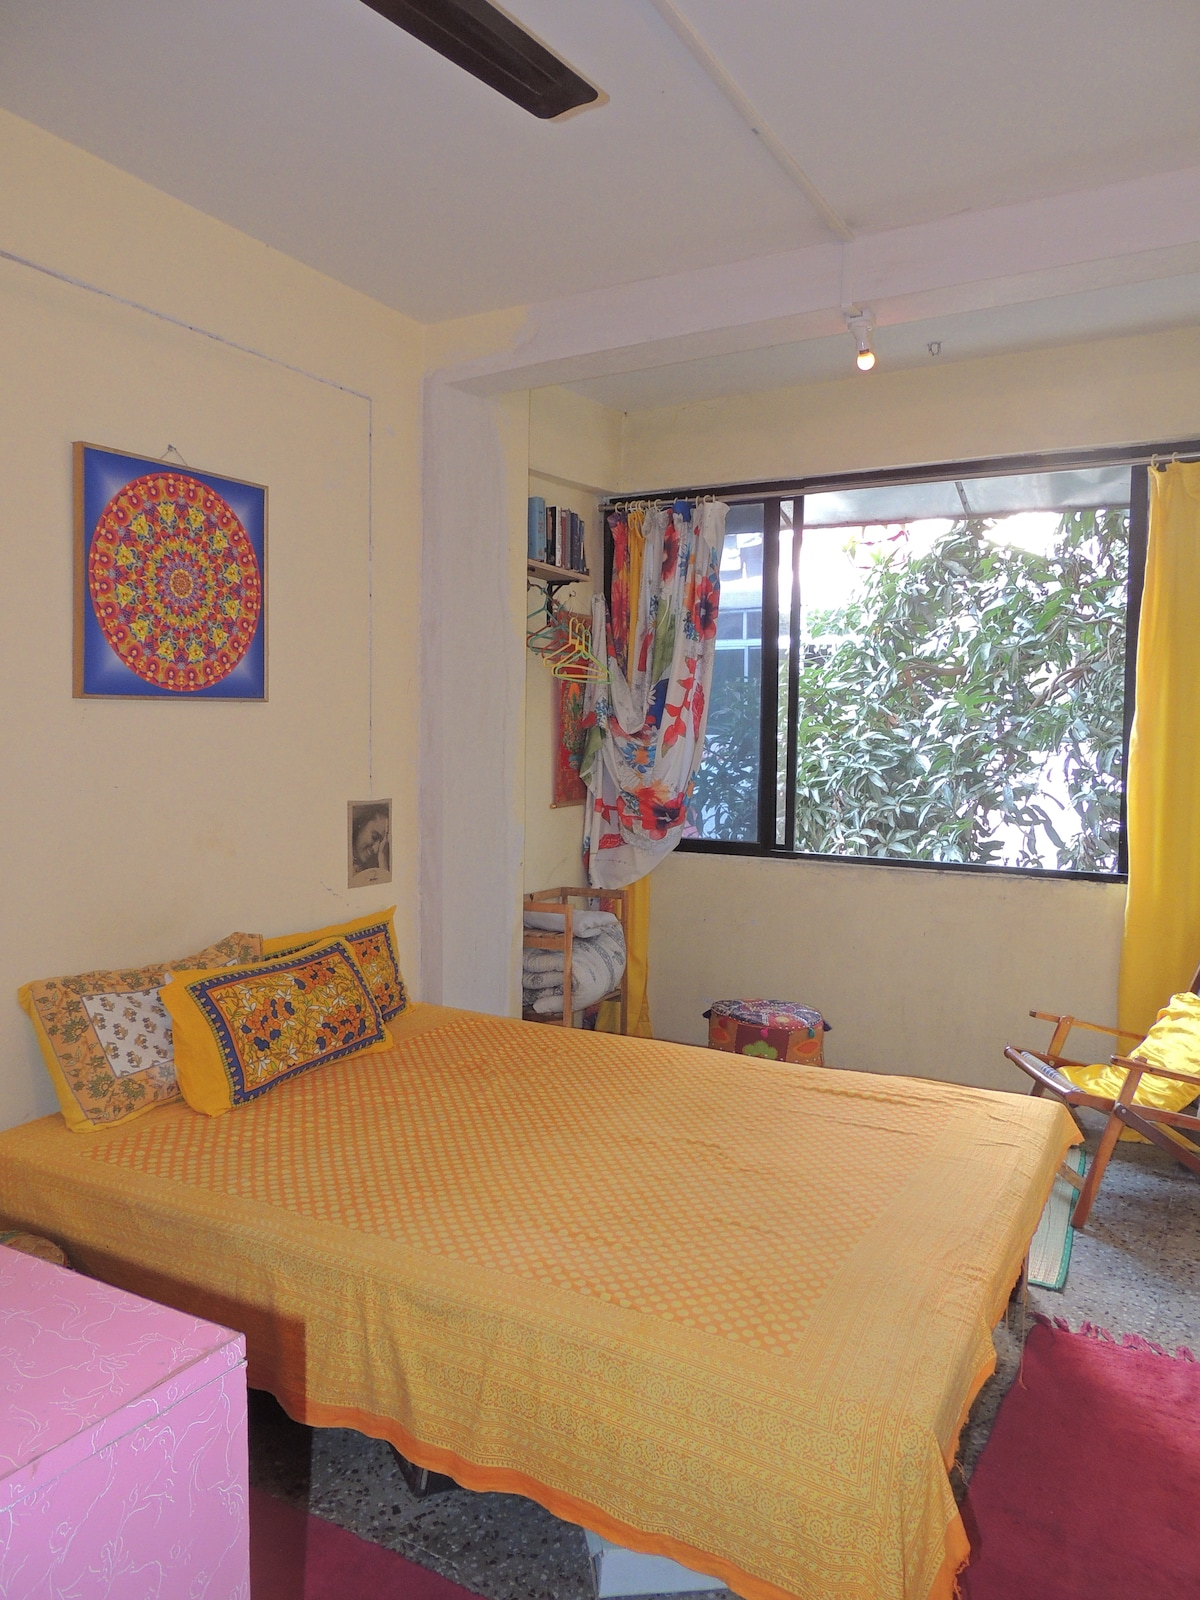 our guest-room with happy yellow mandala, relaxing atmosphere, garden-view, radio, books etc.